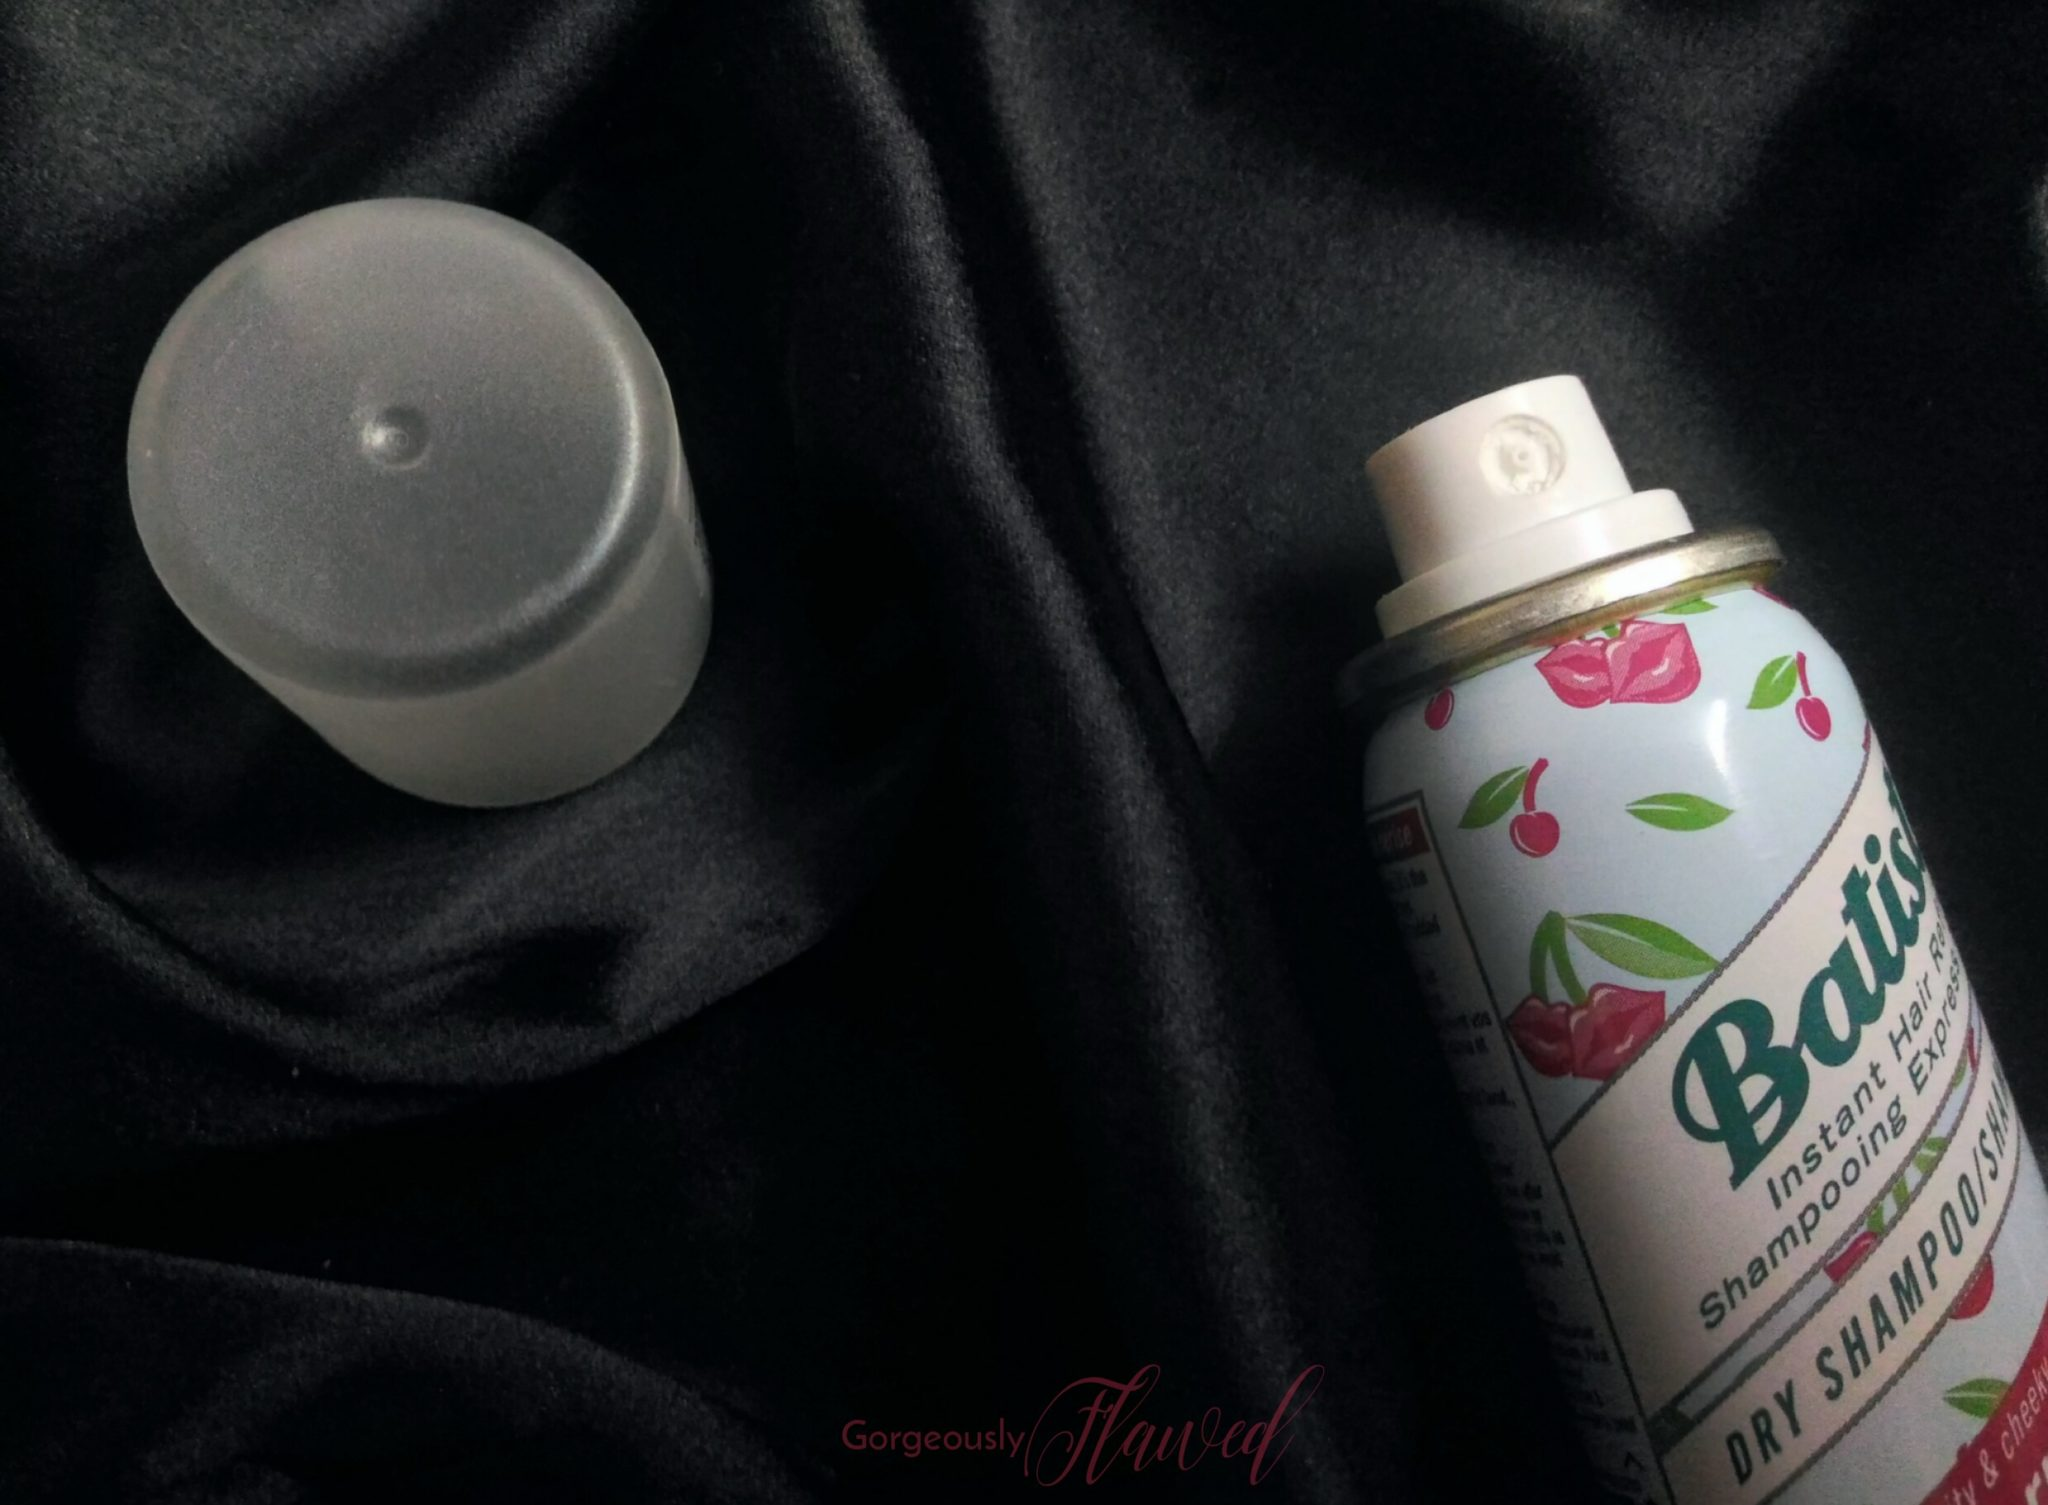 Review | Batiste Dry Shampoo - Fruity & Cheeky Cherry